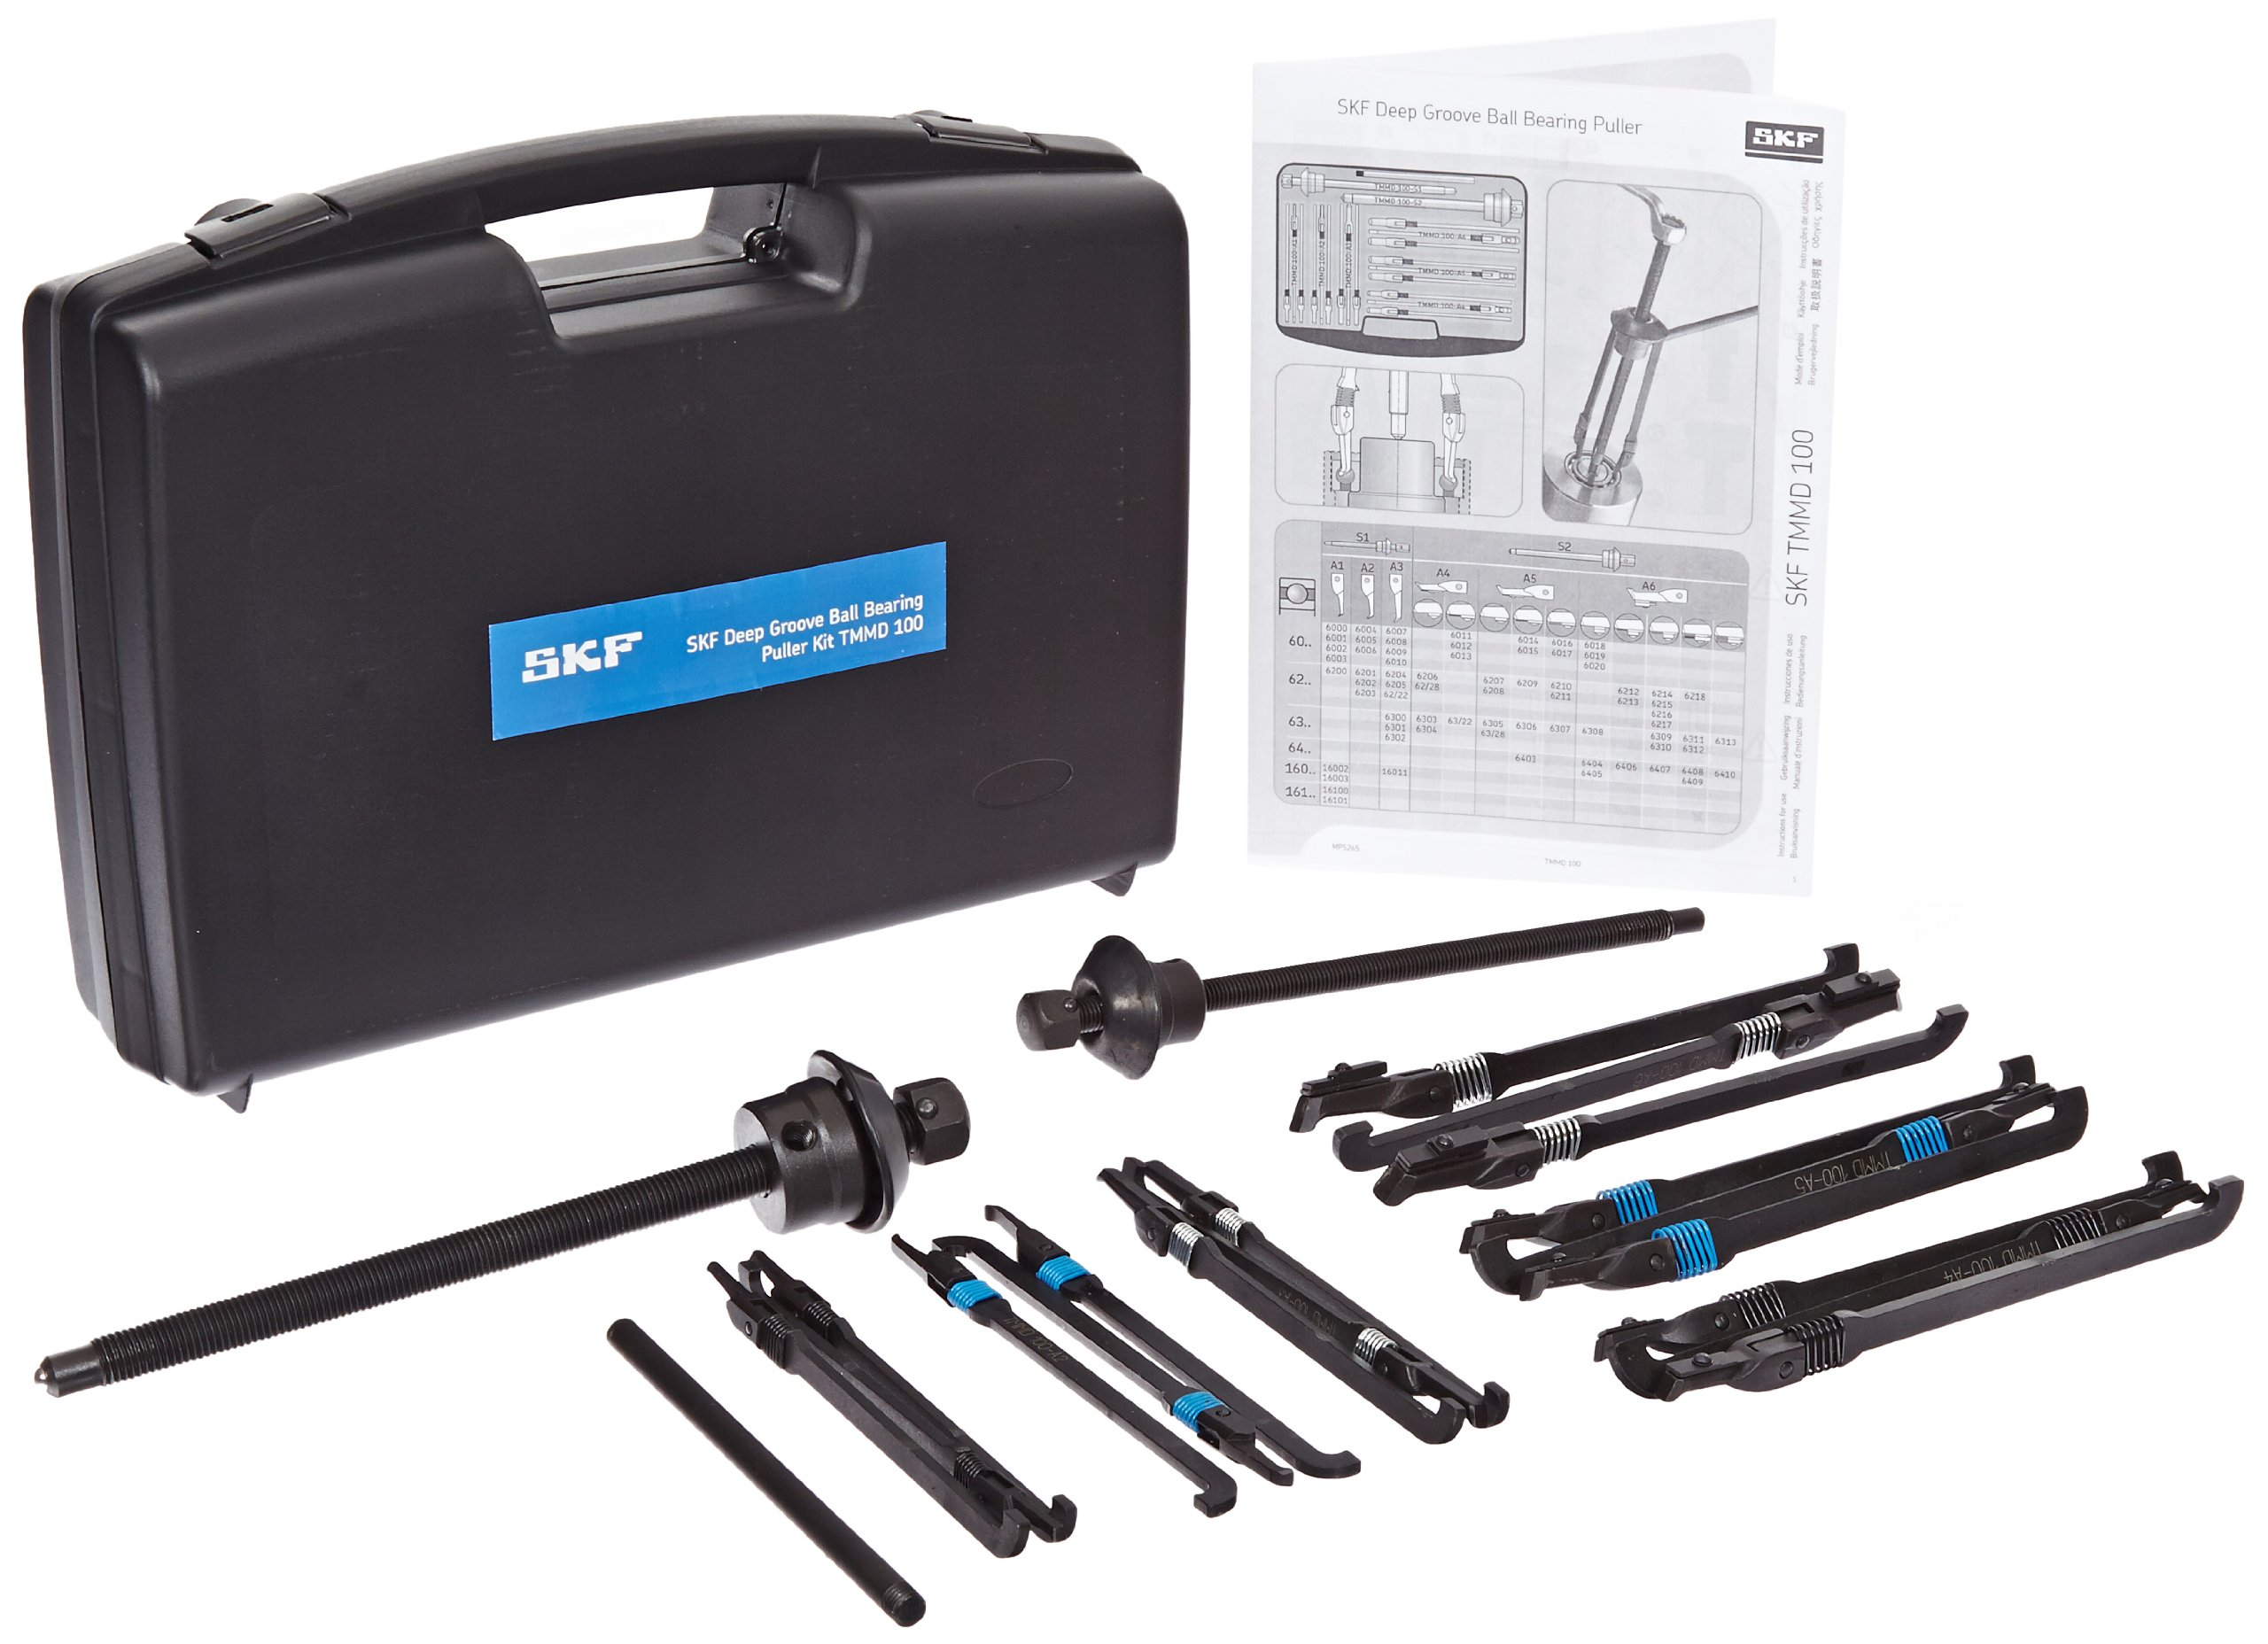 SKF TMMD 100 Blind Housing Puller Kit, 0.4 - 3.9'' Shaft Diameter Range, 6 Arm Sets, 2 Spindles